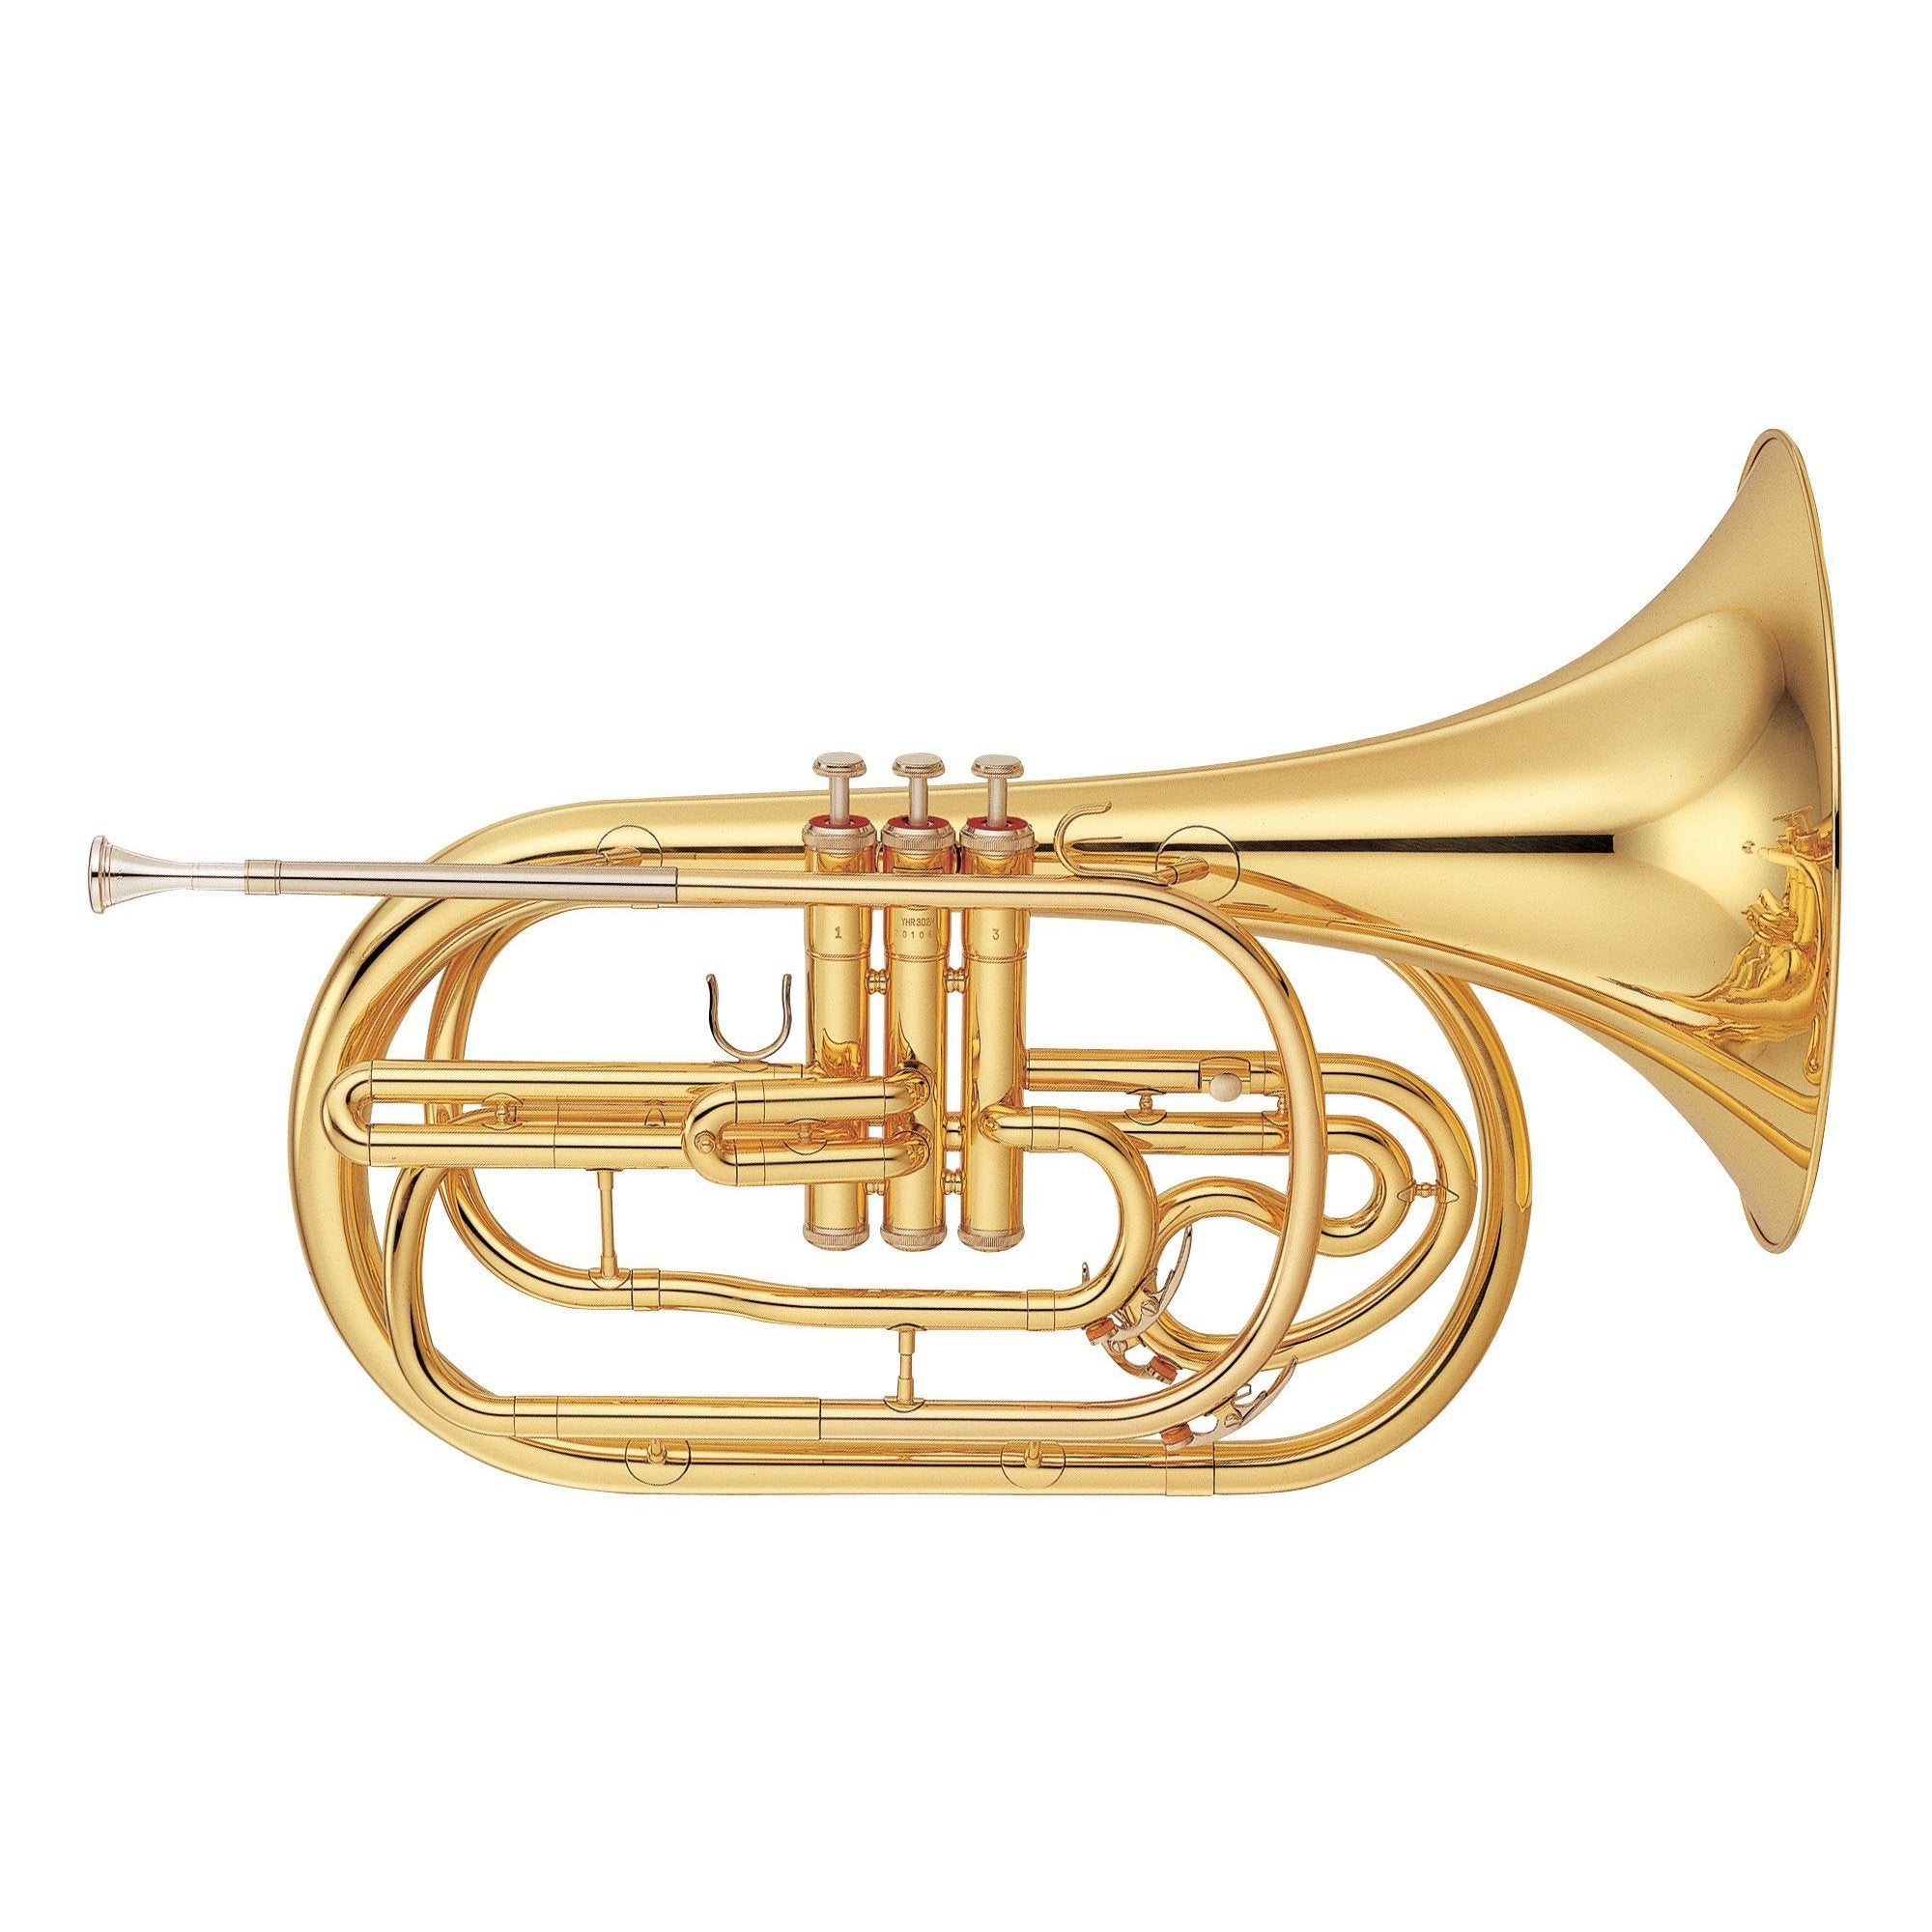 Yamaha - YHR-302M - Marching French Horn-French Horn-Yamaha-Music Elements